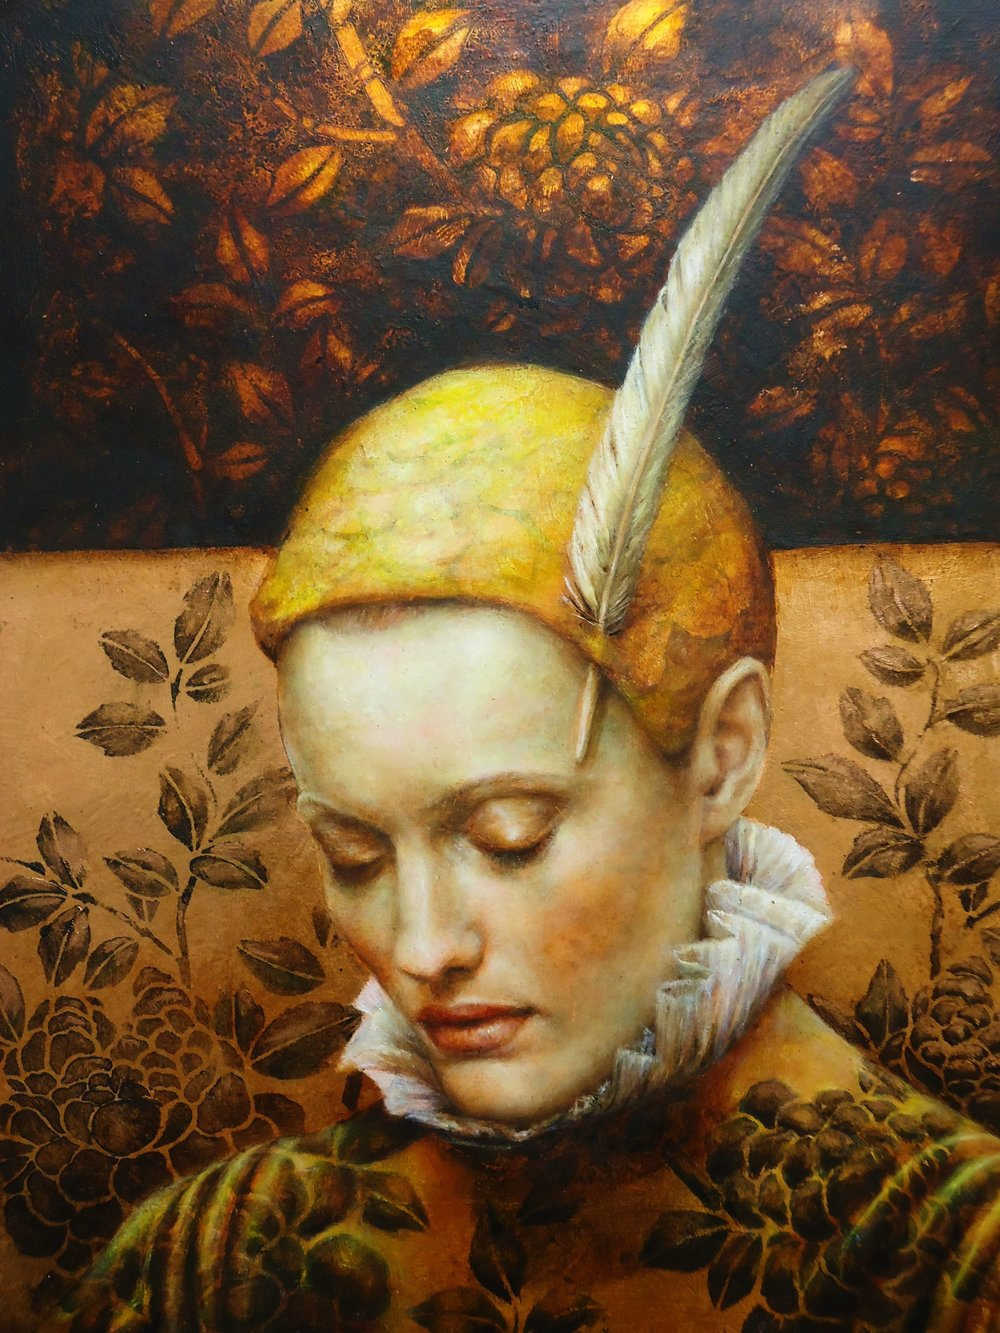 Pam Hawkes  |  Holding onto the Light  |  Oil on copper leaf on board  |  20 x 16 inches or 50 ¾ x 40 ½ cm